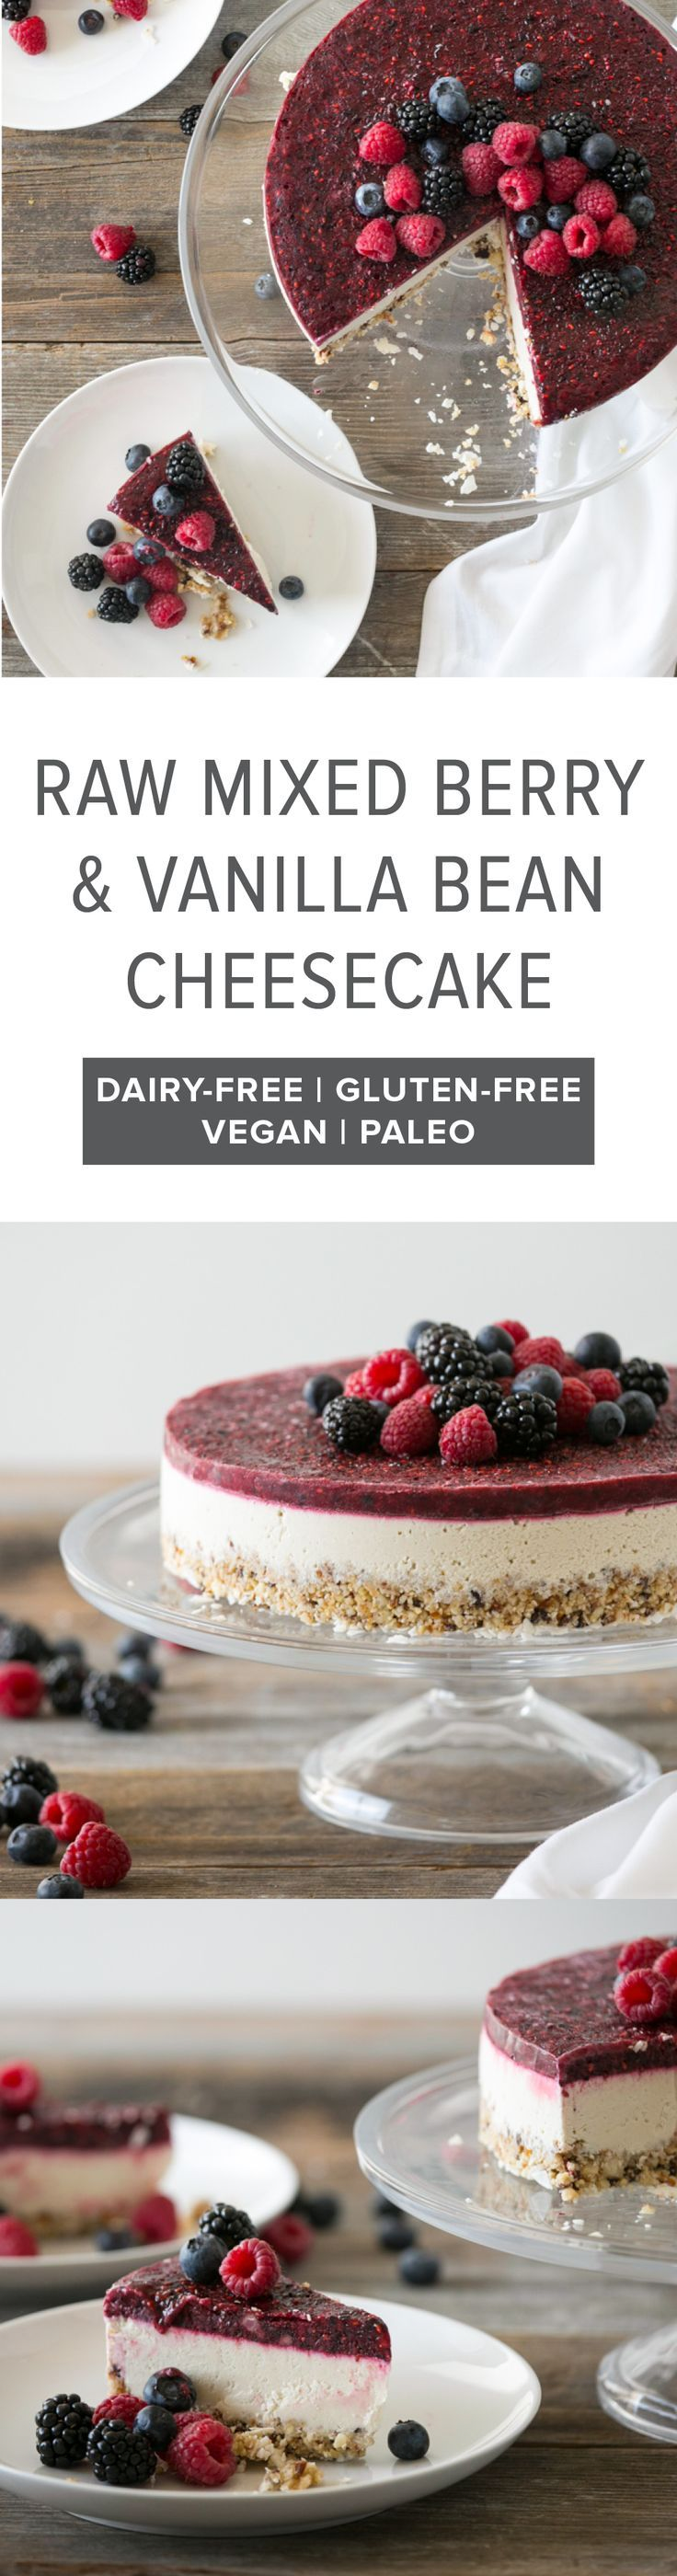 (gluten-free, dairy-free, paleo, vegan) One of my favorite raw cheesecake recipes - raw mixed berry and vanilla bean cheesecake.